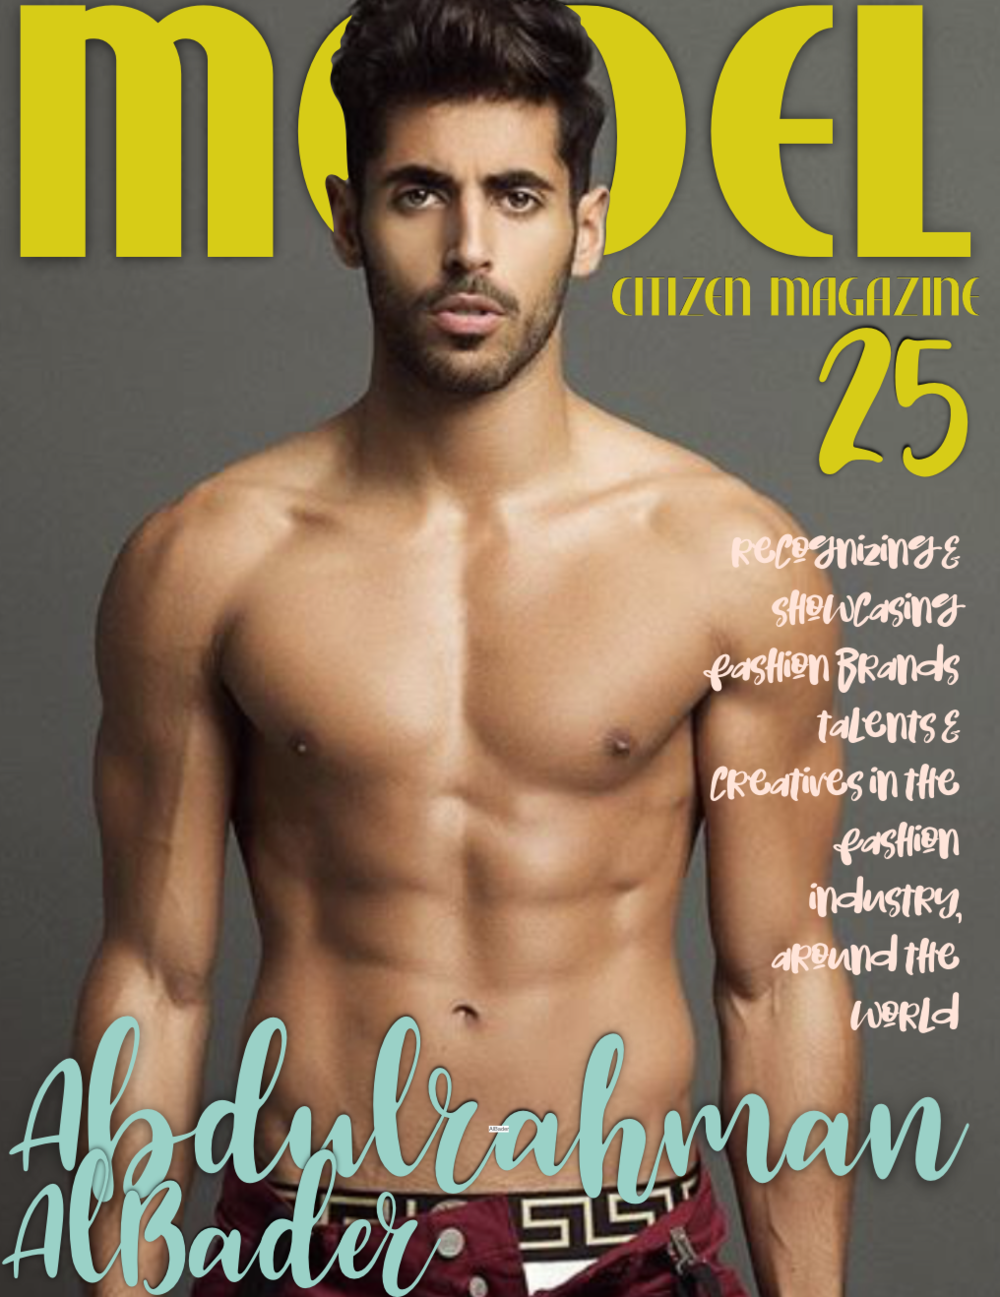 Abdulrahman AlBader, Model Citizen Magazine, Best Male Model 2018, Male Model to Watch, Kuwait Male Model, Kuwait Man, Arab Man Model, Most Handsome Arab Man